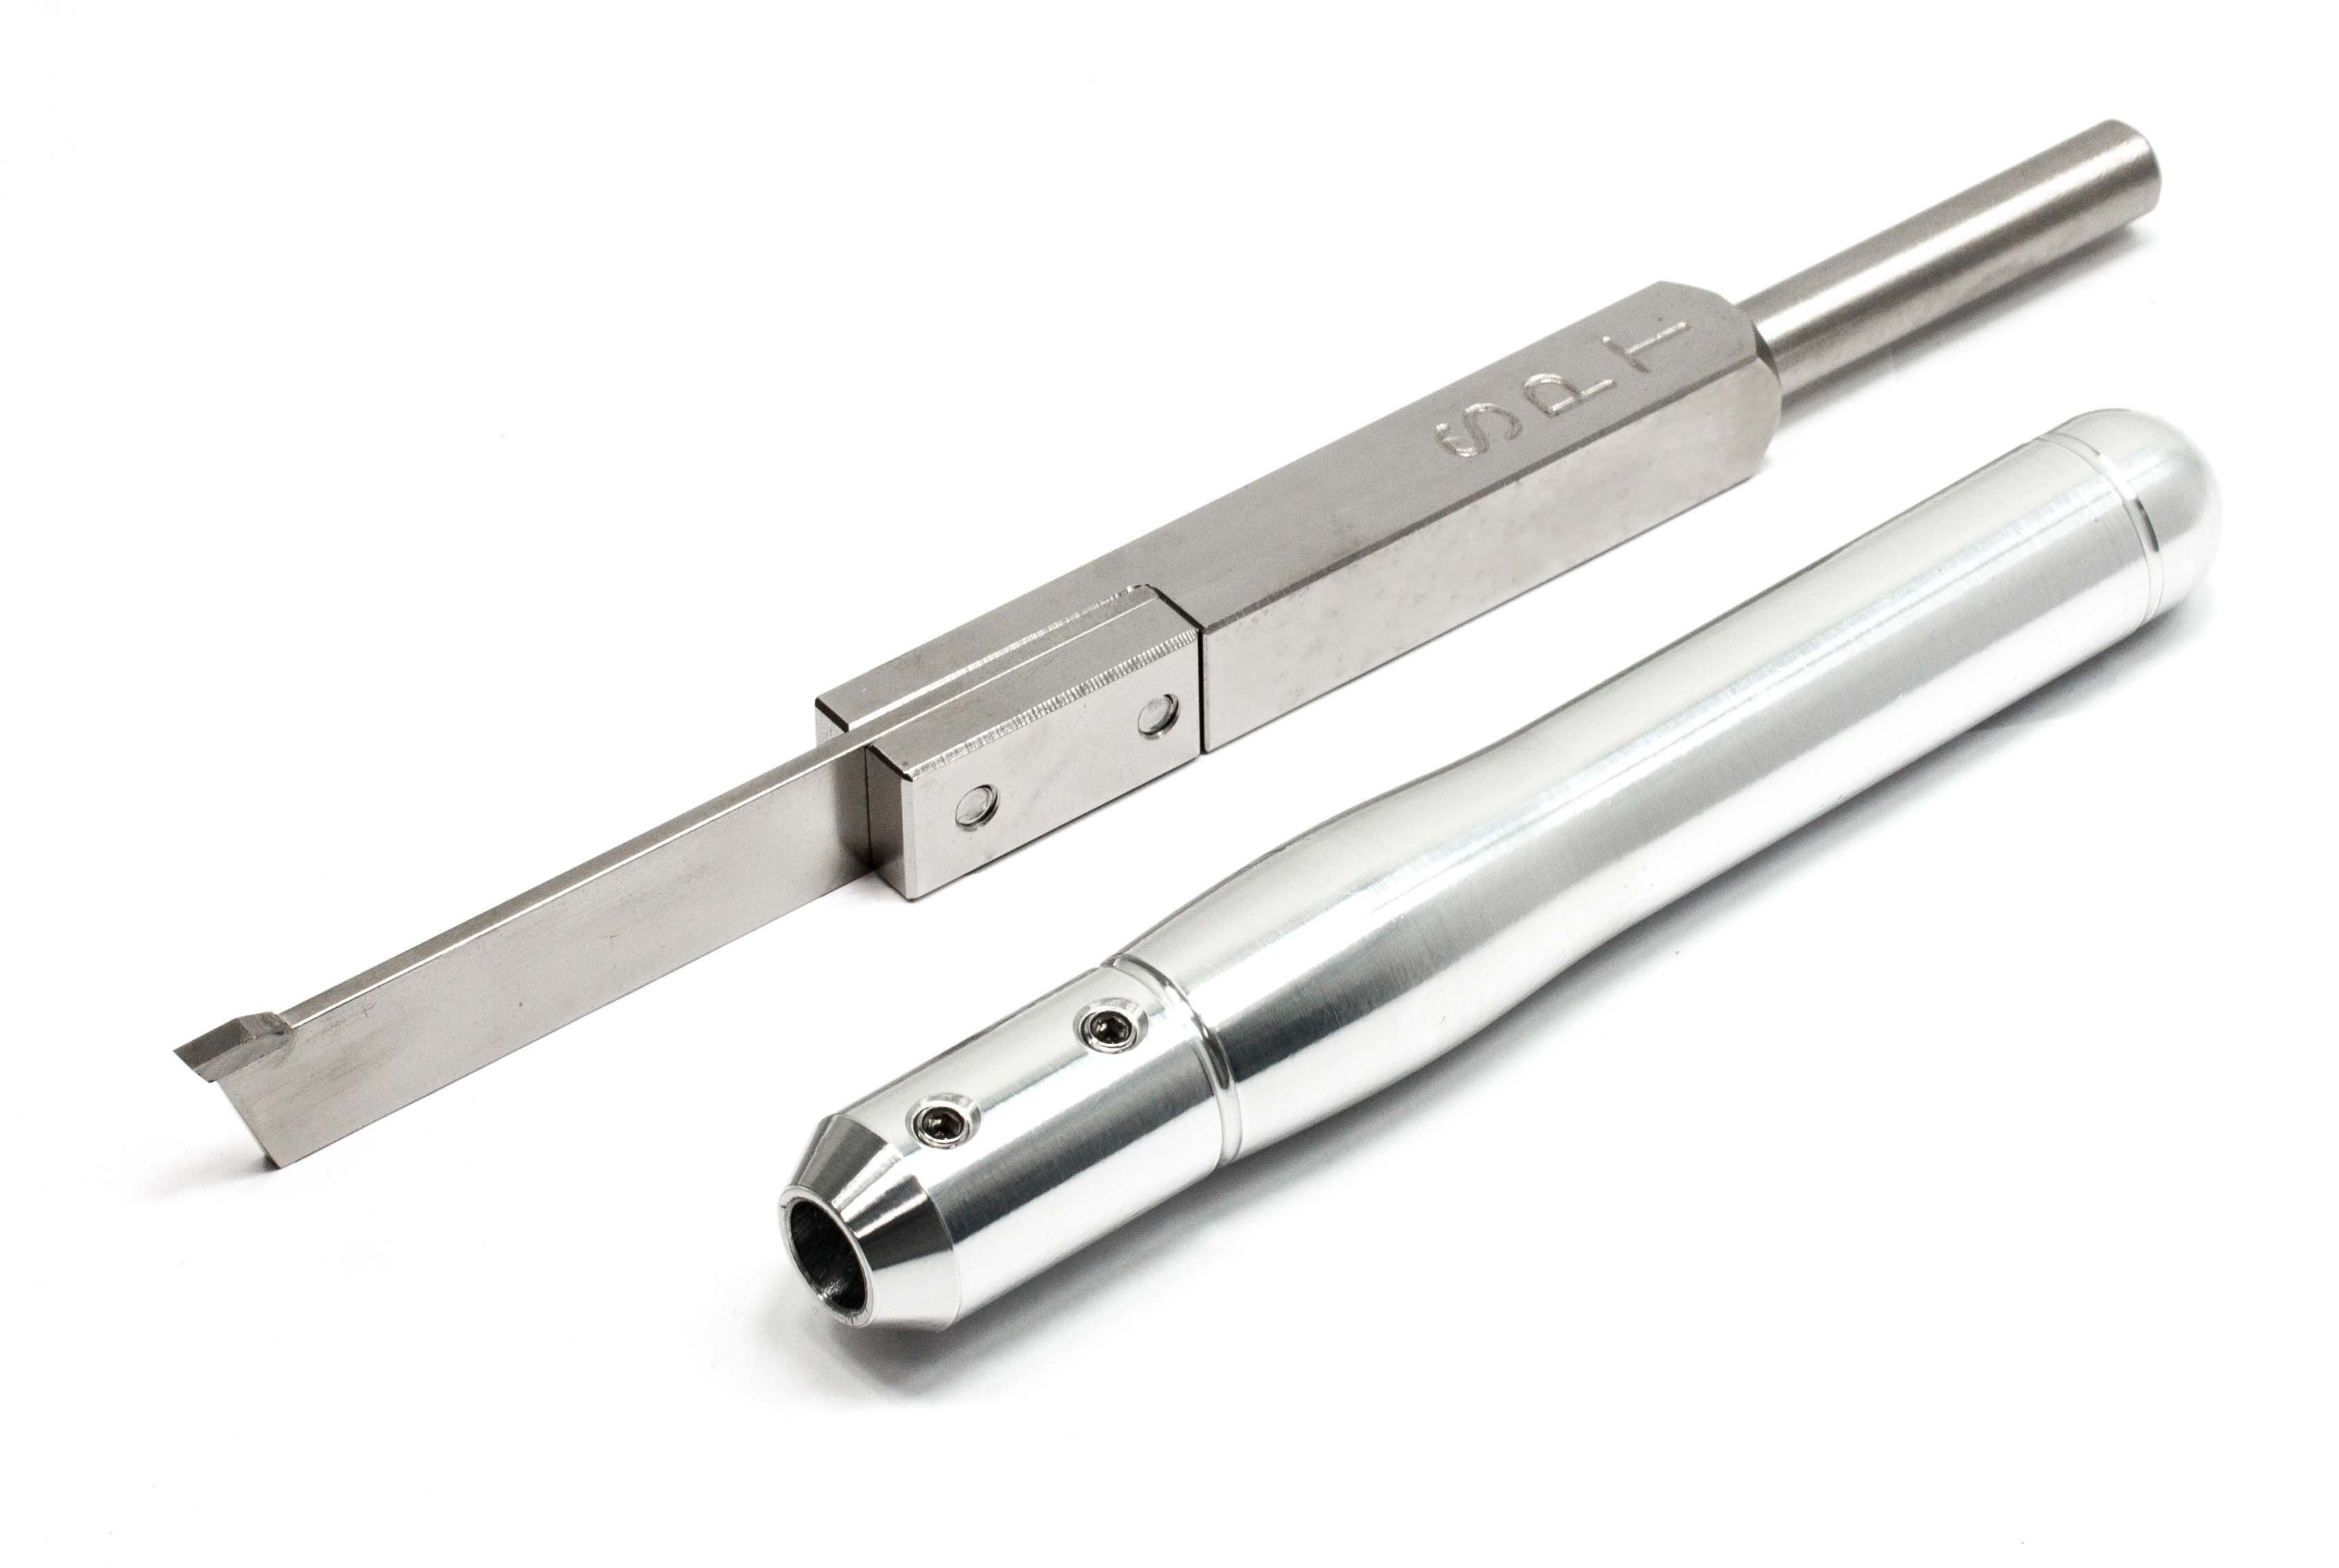 Simple Carbide Parting Tool For Wood Lathe Woodlathe Manny The